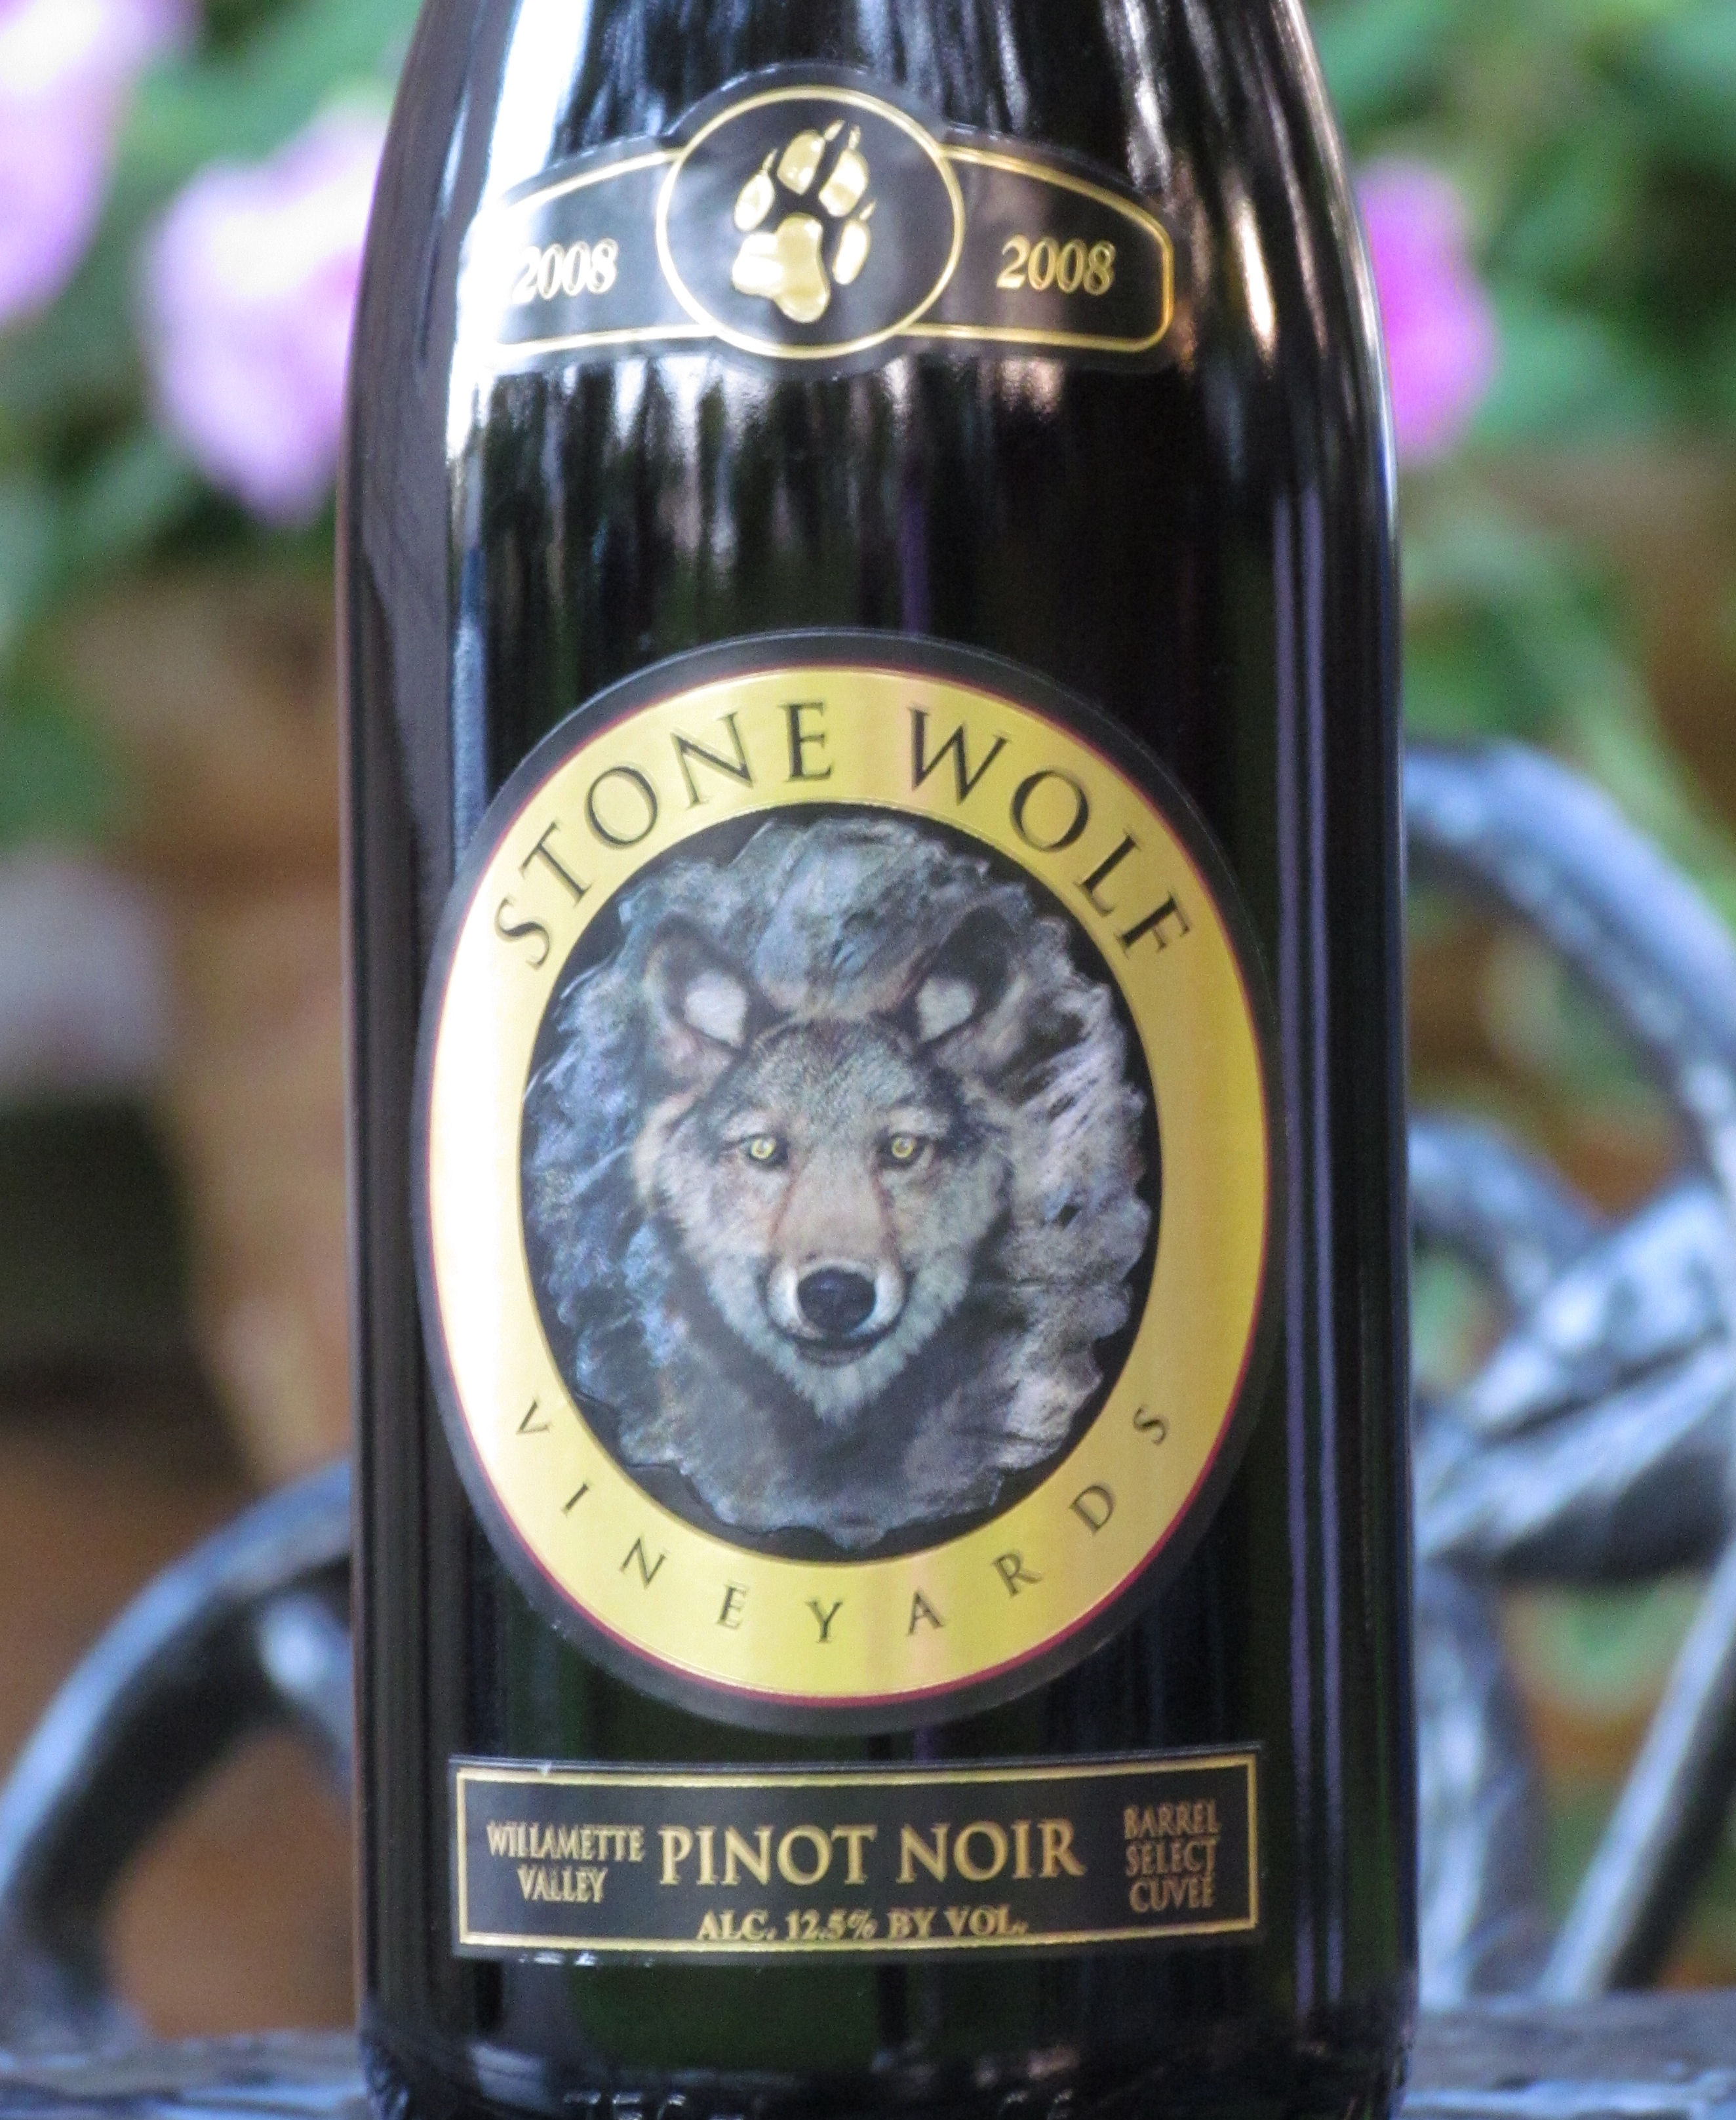 Stone Wolf Pinot Noir Wine Review